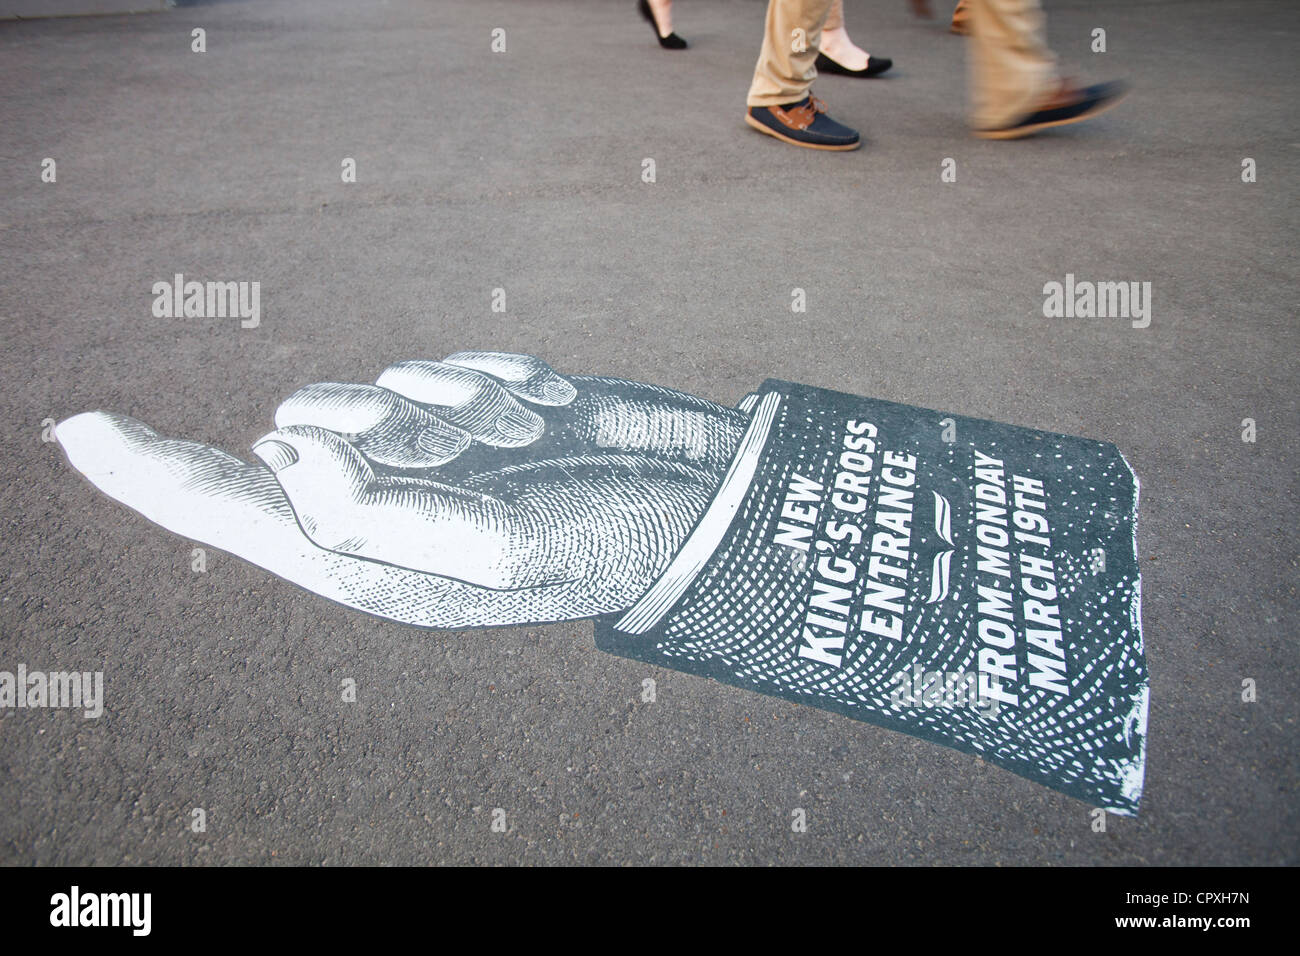 Pavement pointers to the entrance of the new Knigs Cross railway station, London, UK. - Stock Image